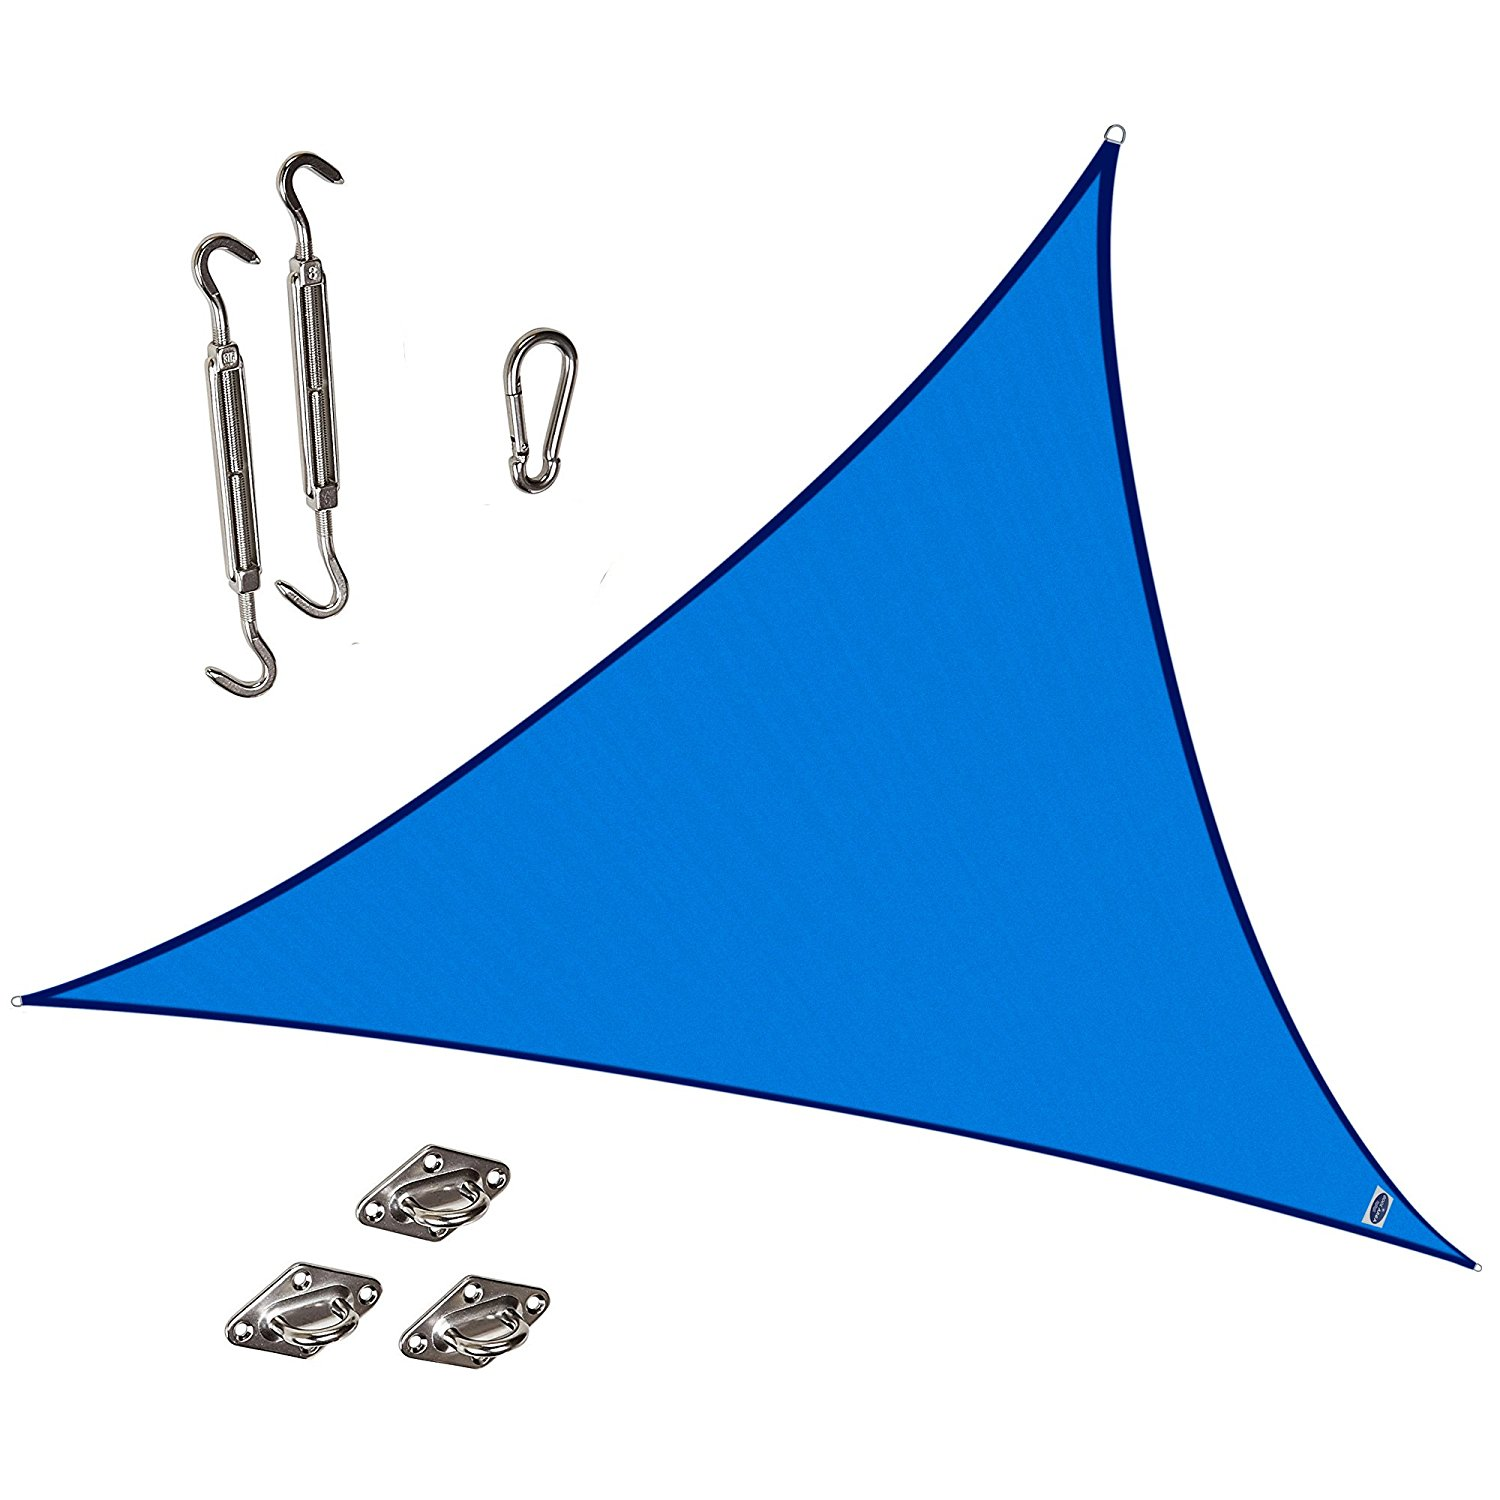 Cool Area Triangle 16 Feet 5 Inches Durable Sun Shade Sail with Stainless Steel Hardware Kit, UV Block Fabric Patio Shade Sail in Color Silvery